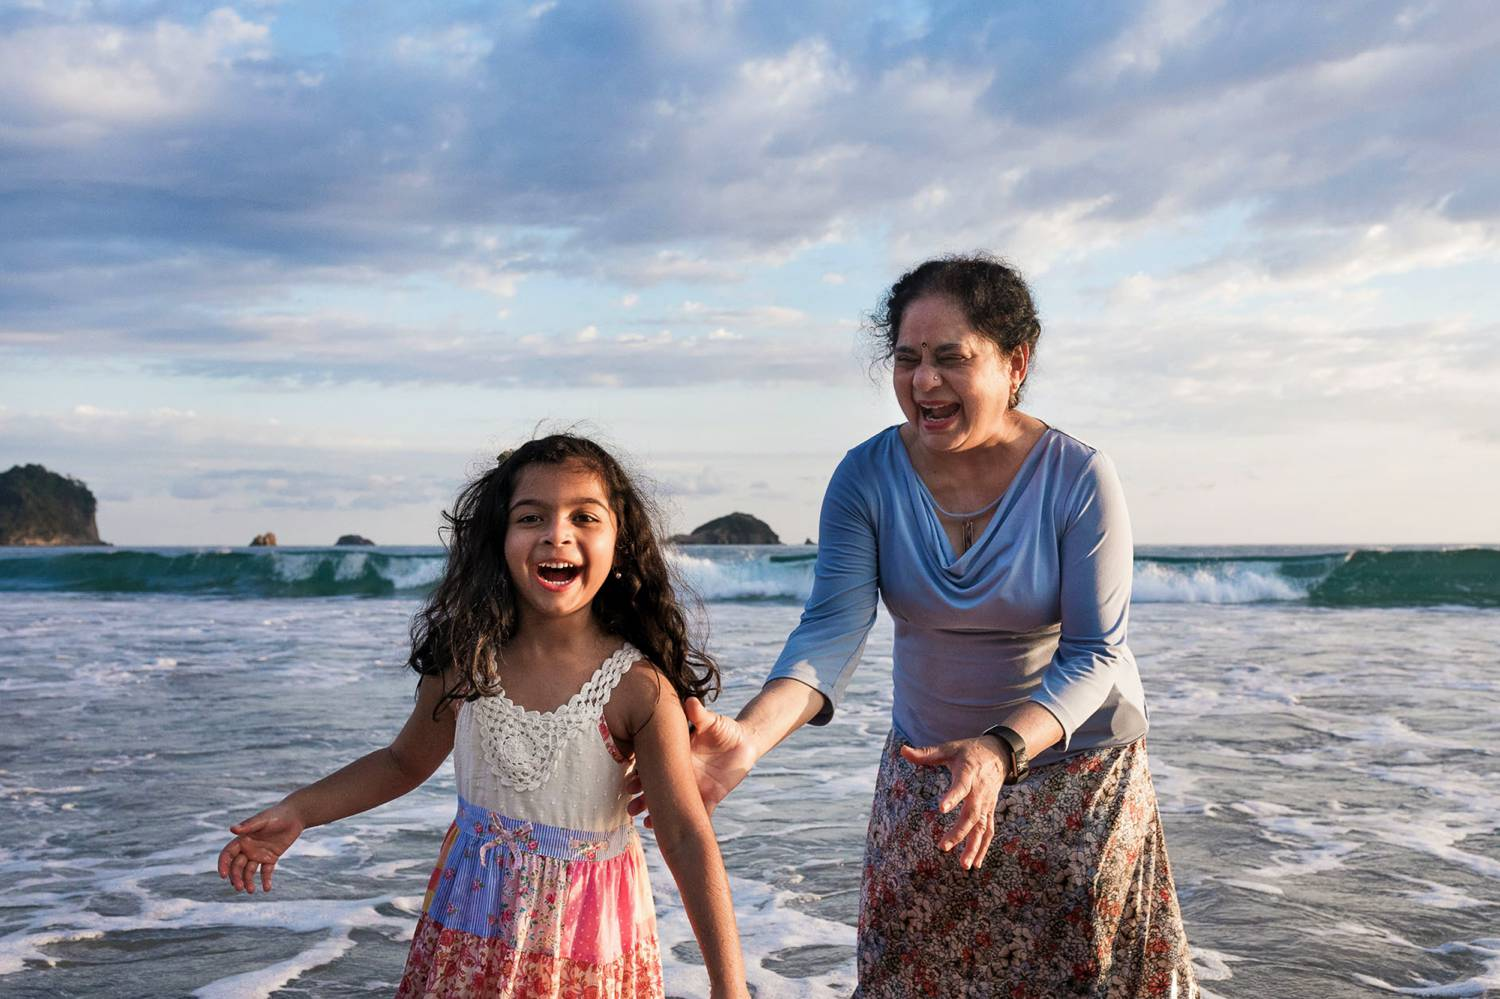 Client Experience: Kevin Heslin's photograph of an Indian woman and her granddaughter playing on a beach at sunset.